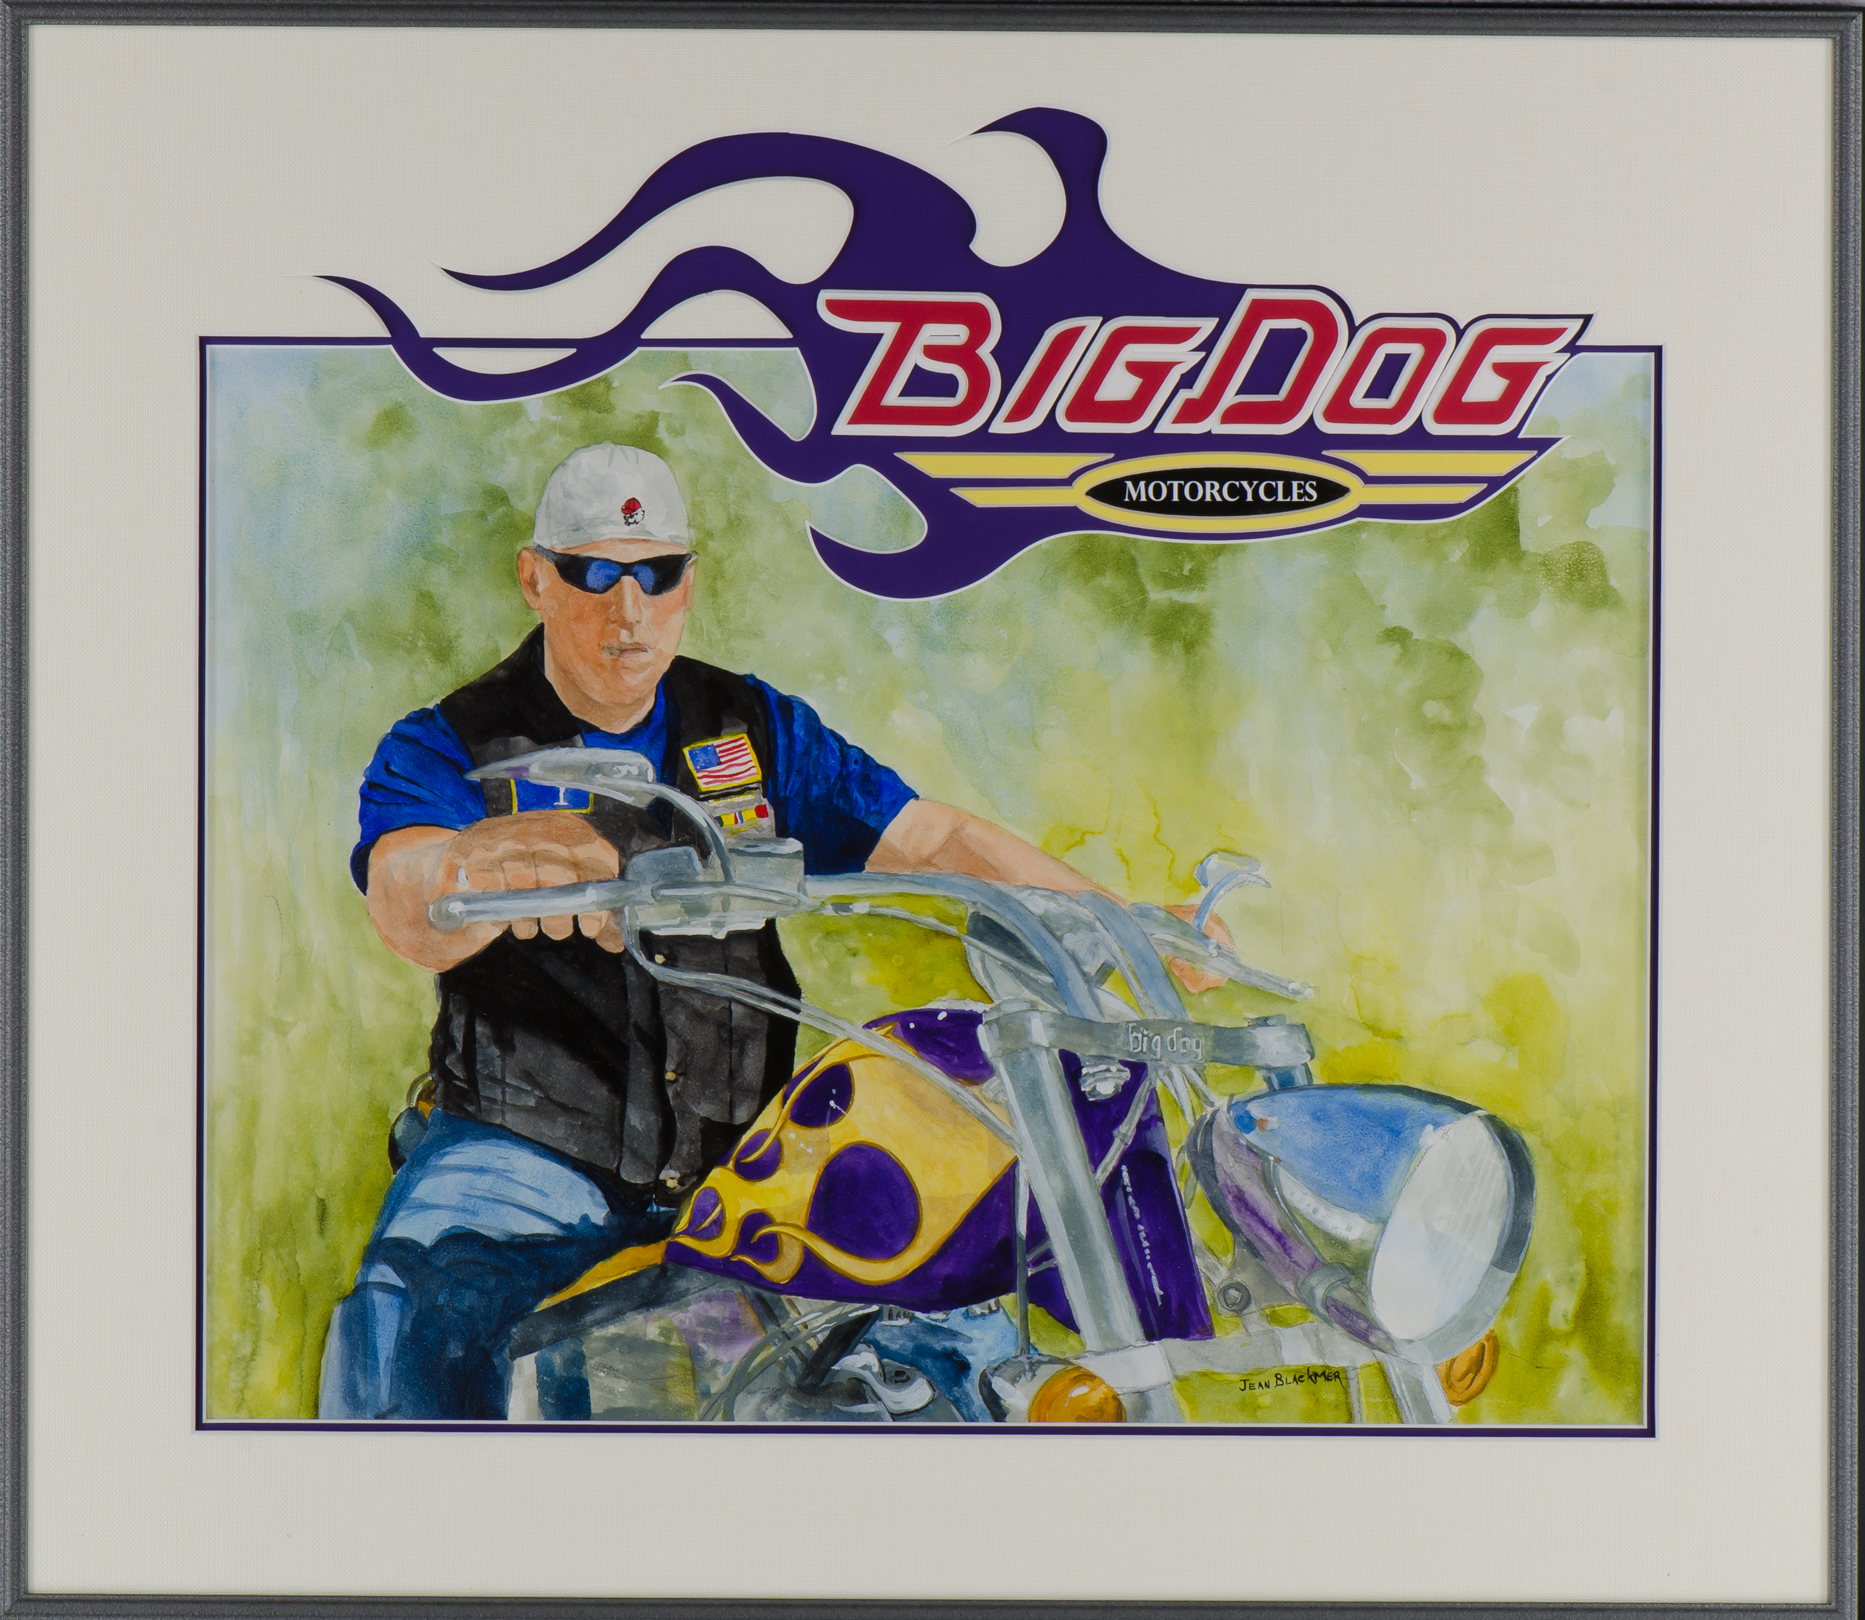 Big Dog Motorcylces